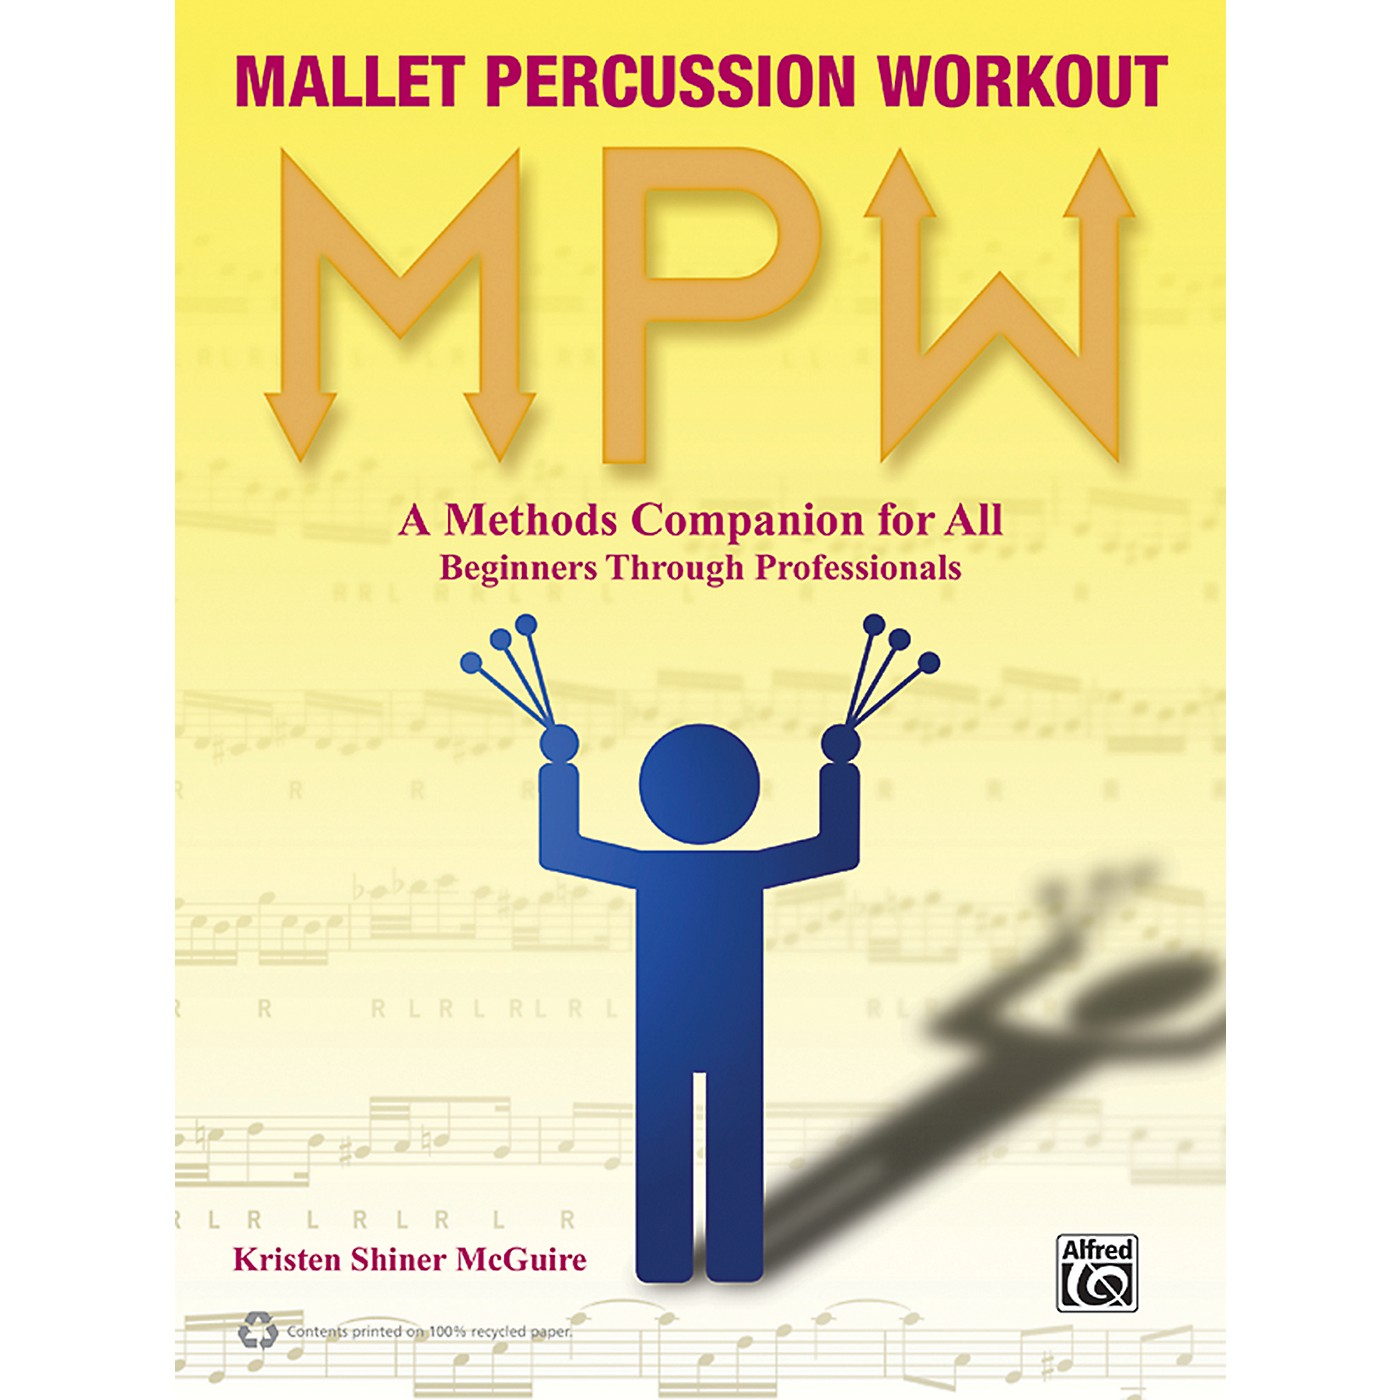 Alfred Mallet Percussion Workout Book thumbnail